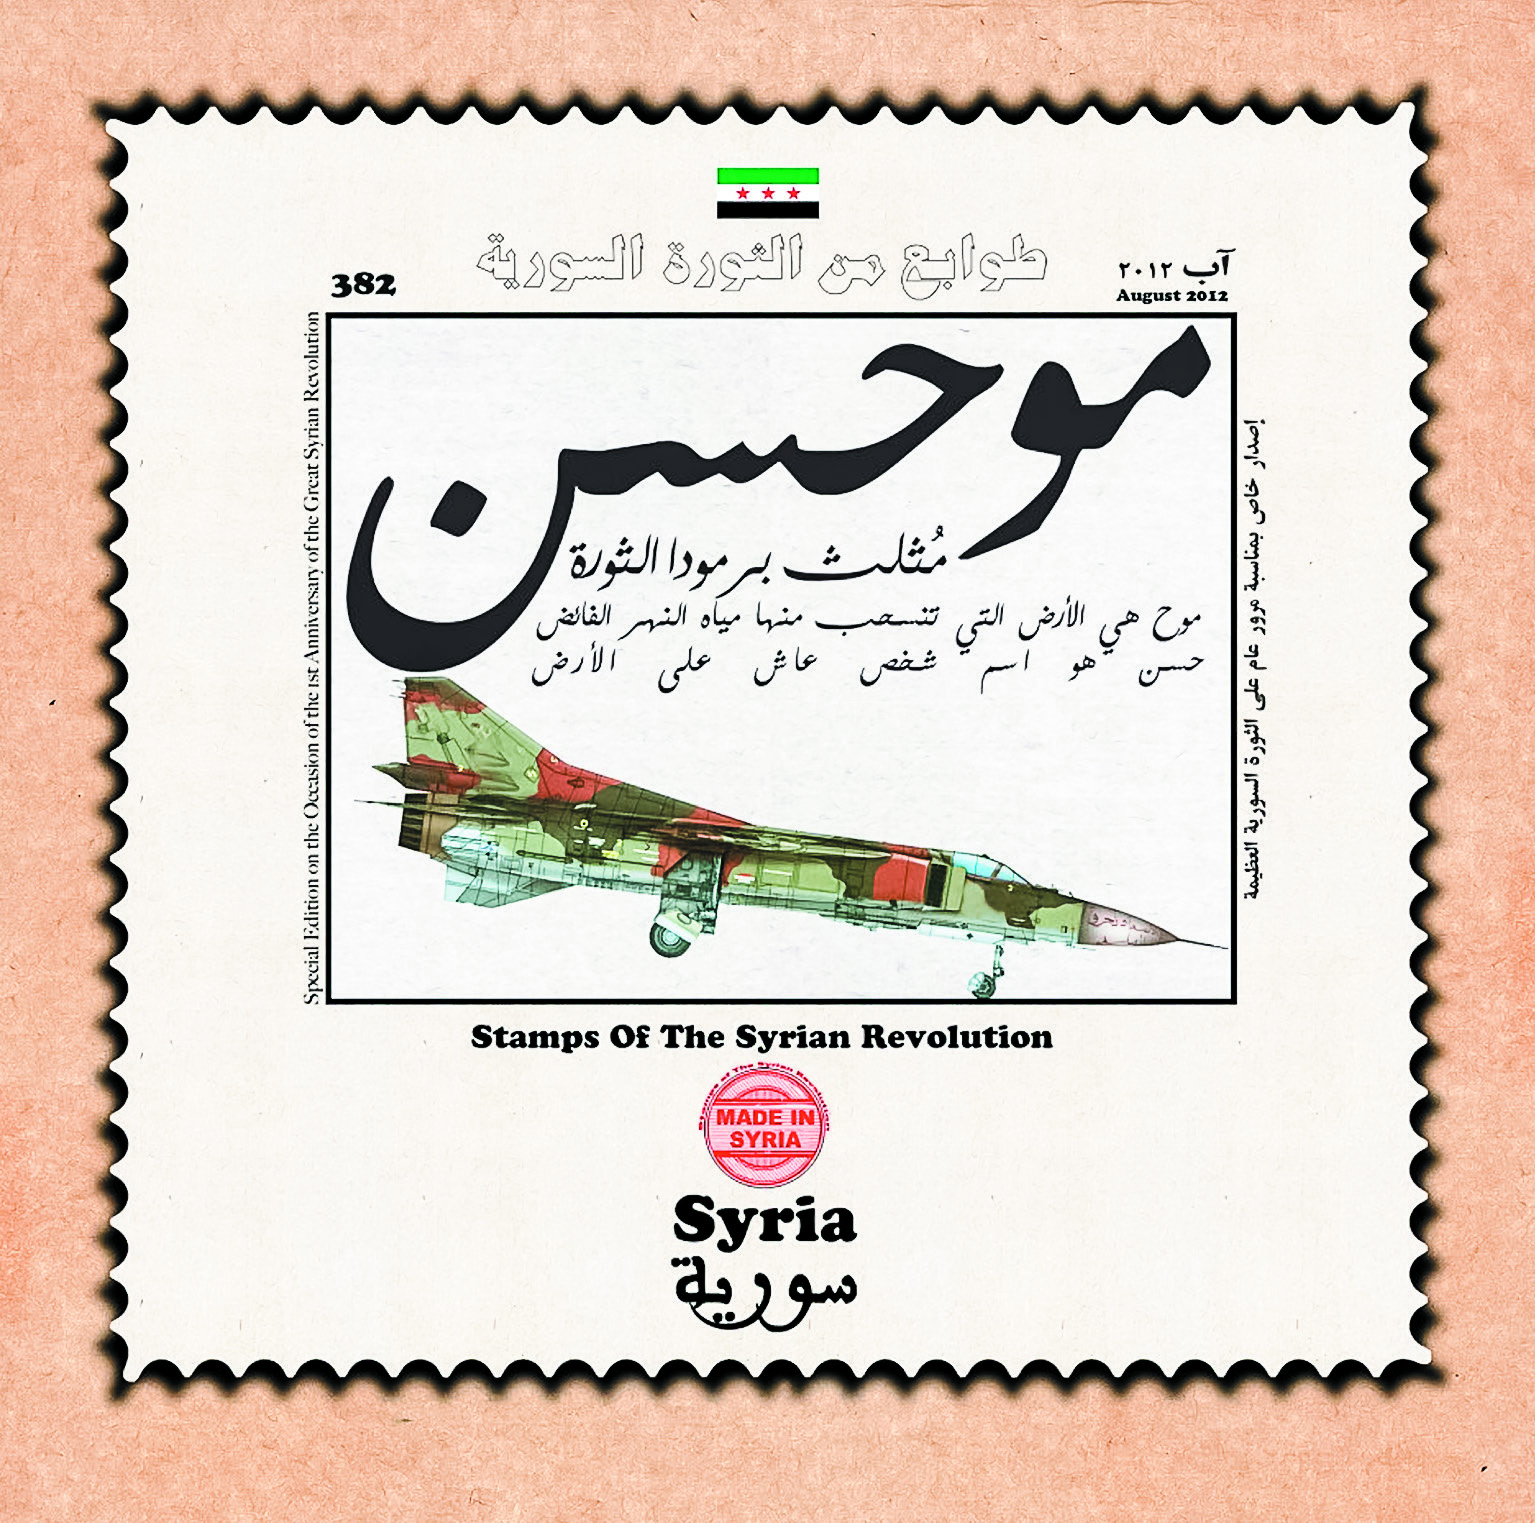 Stamp Of The Syrian Revolution by Ammar al-Beik from 2012 - in December of that year, the Free Syrian Army took al-Muhasan, which was subsequently captured by IS and targeted by air strikes